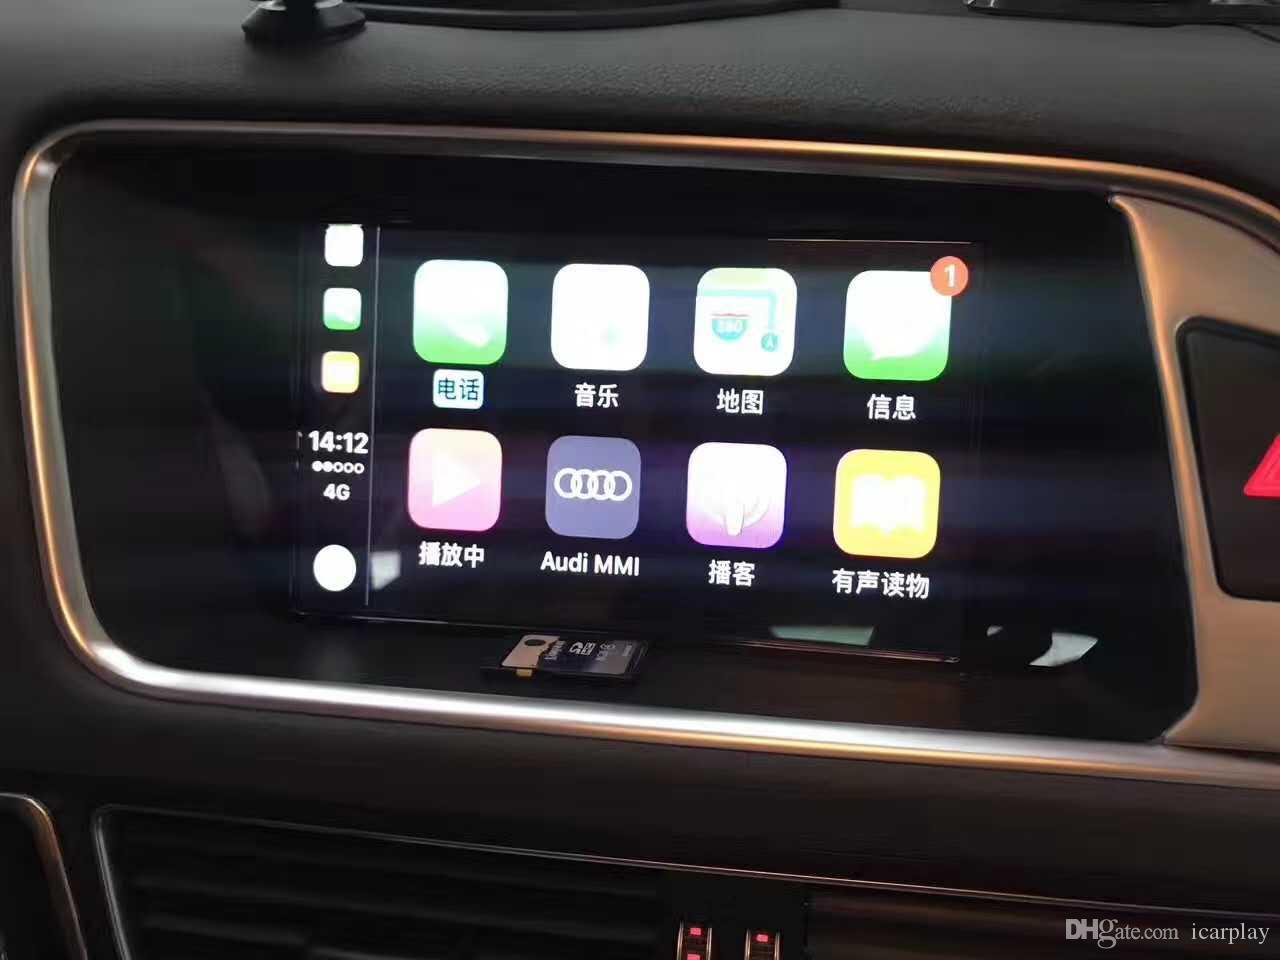 New Generation Carplay Android For Audi Q Audi Tt Carplay - Audi car play